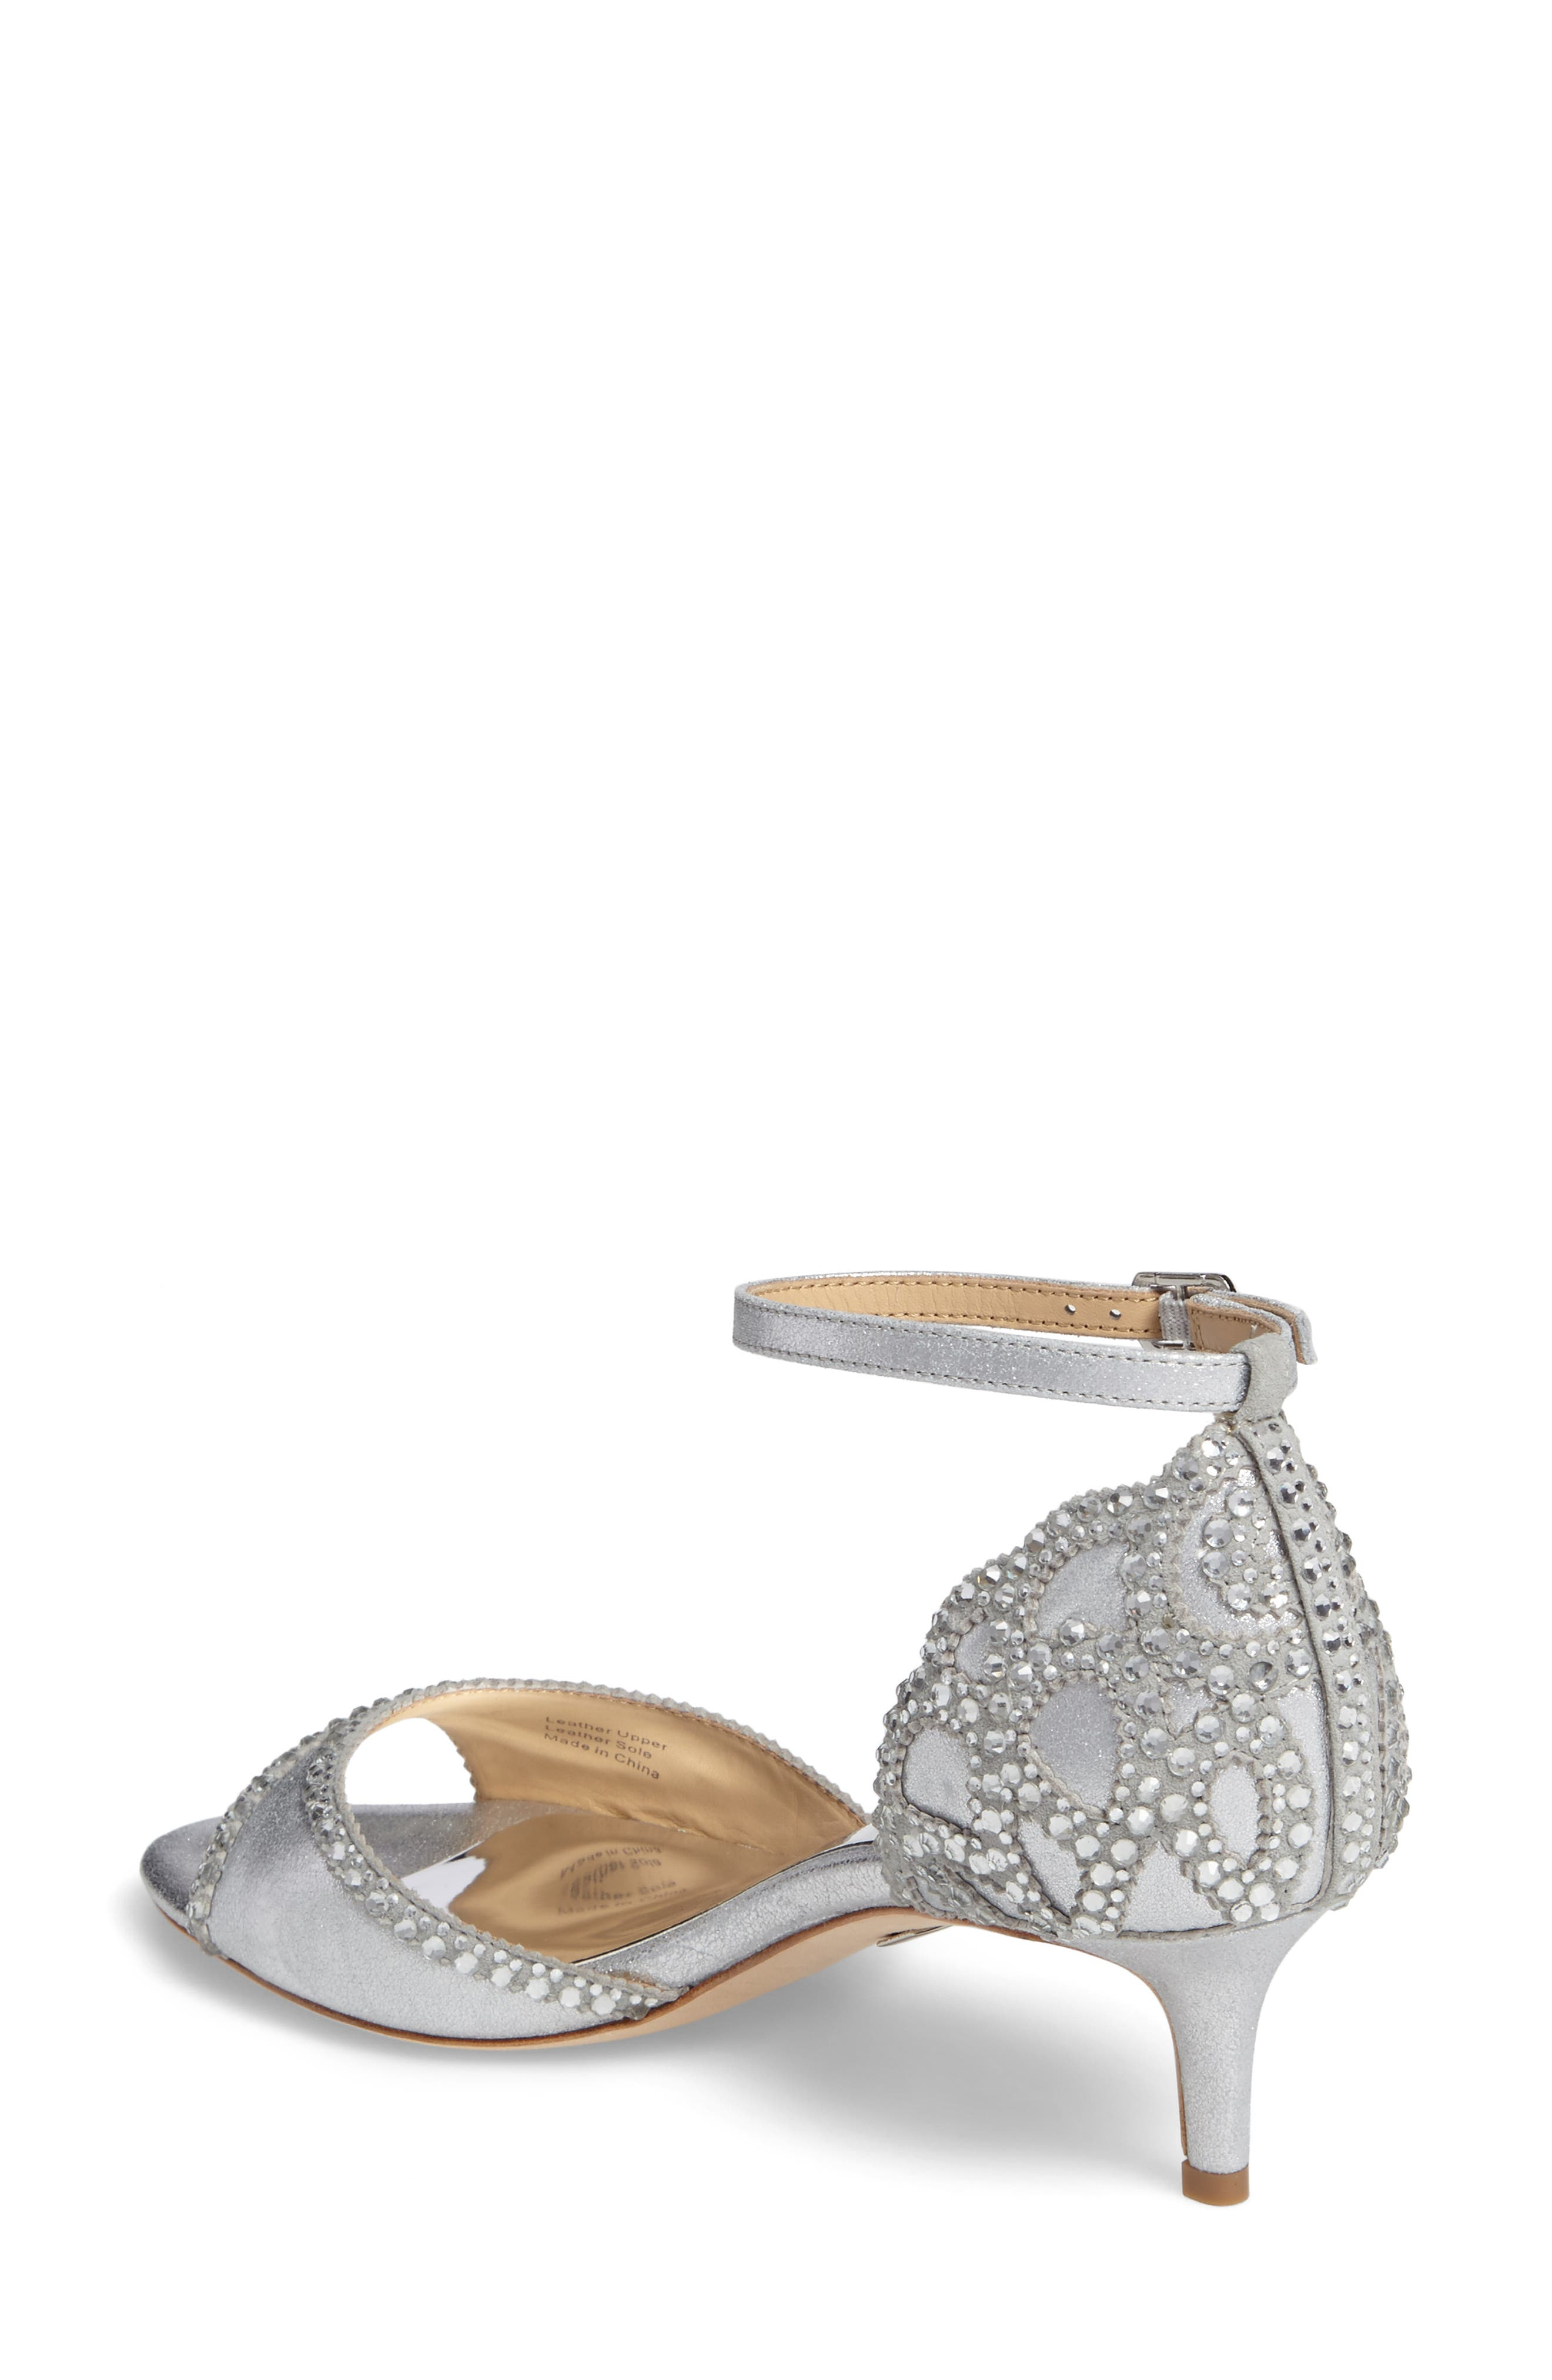 'Gillian' Crystal Embellished d'Orsay Sandal,                             Alternate thumbnail 2, color,                             SILVER METALLIC SUEDE